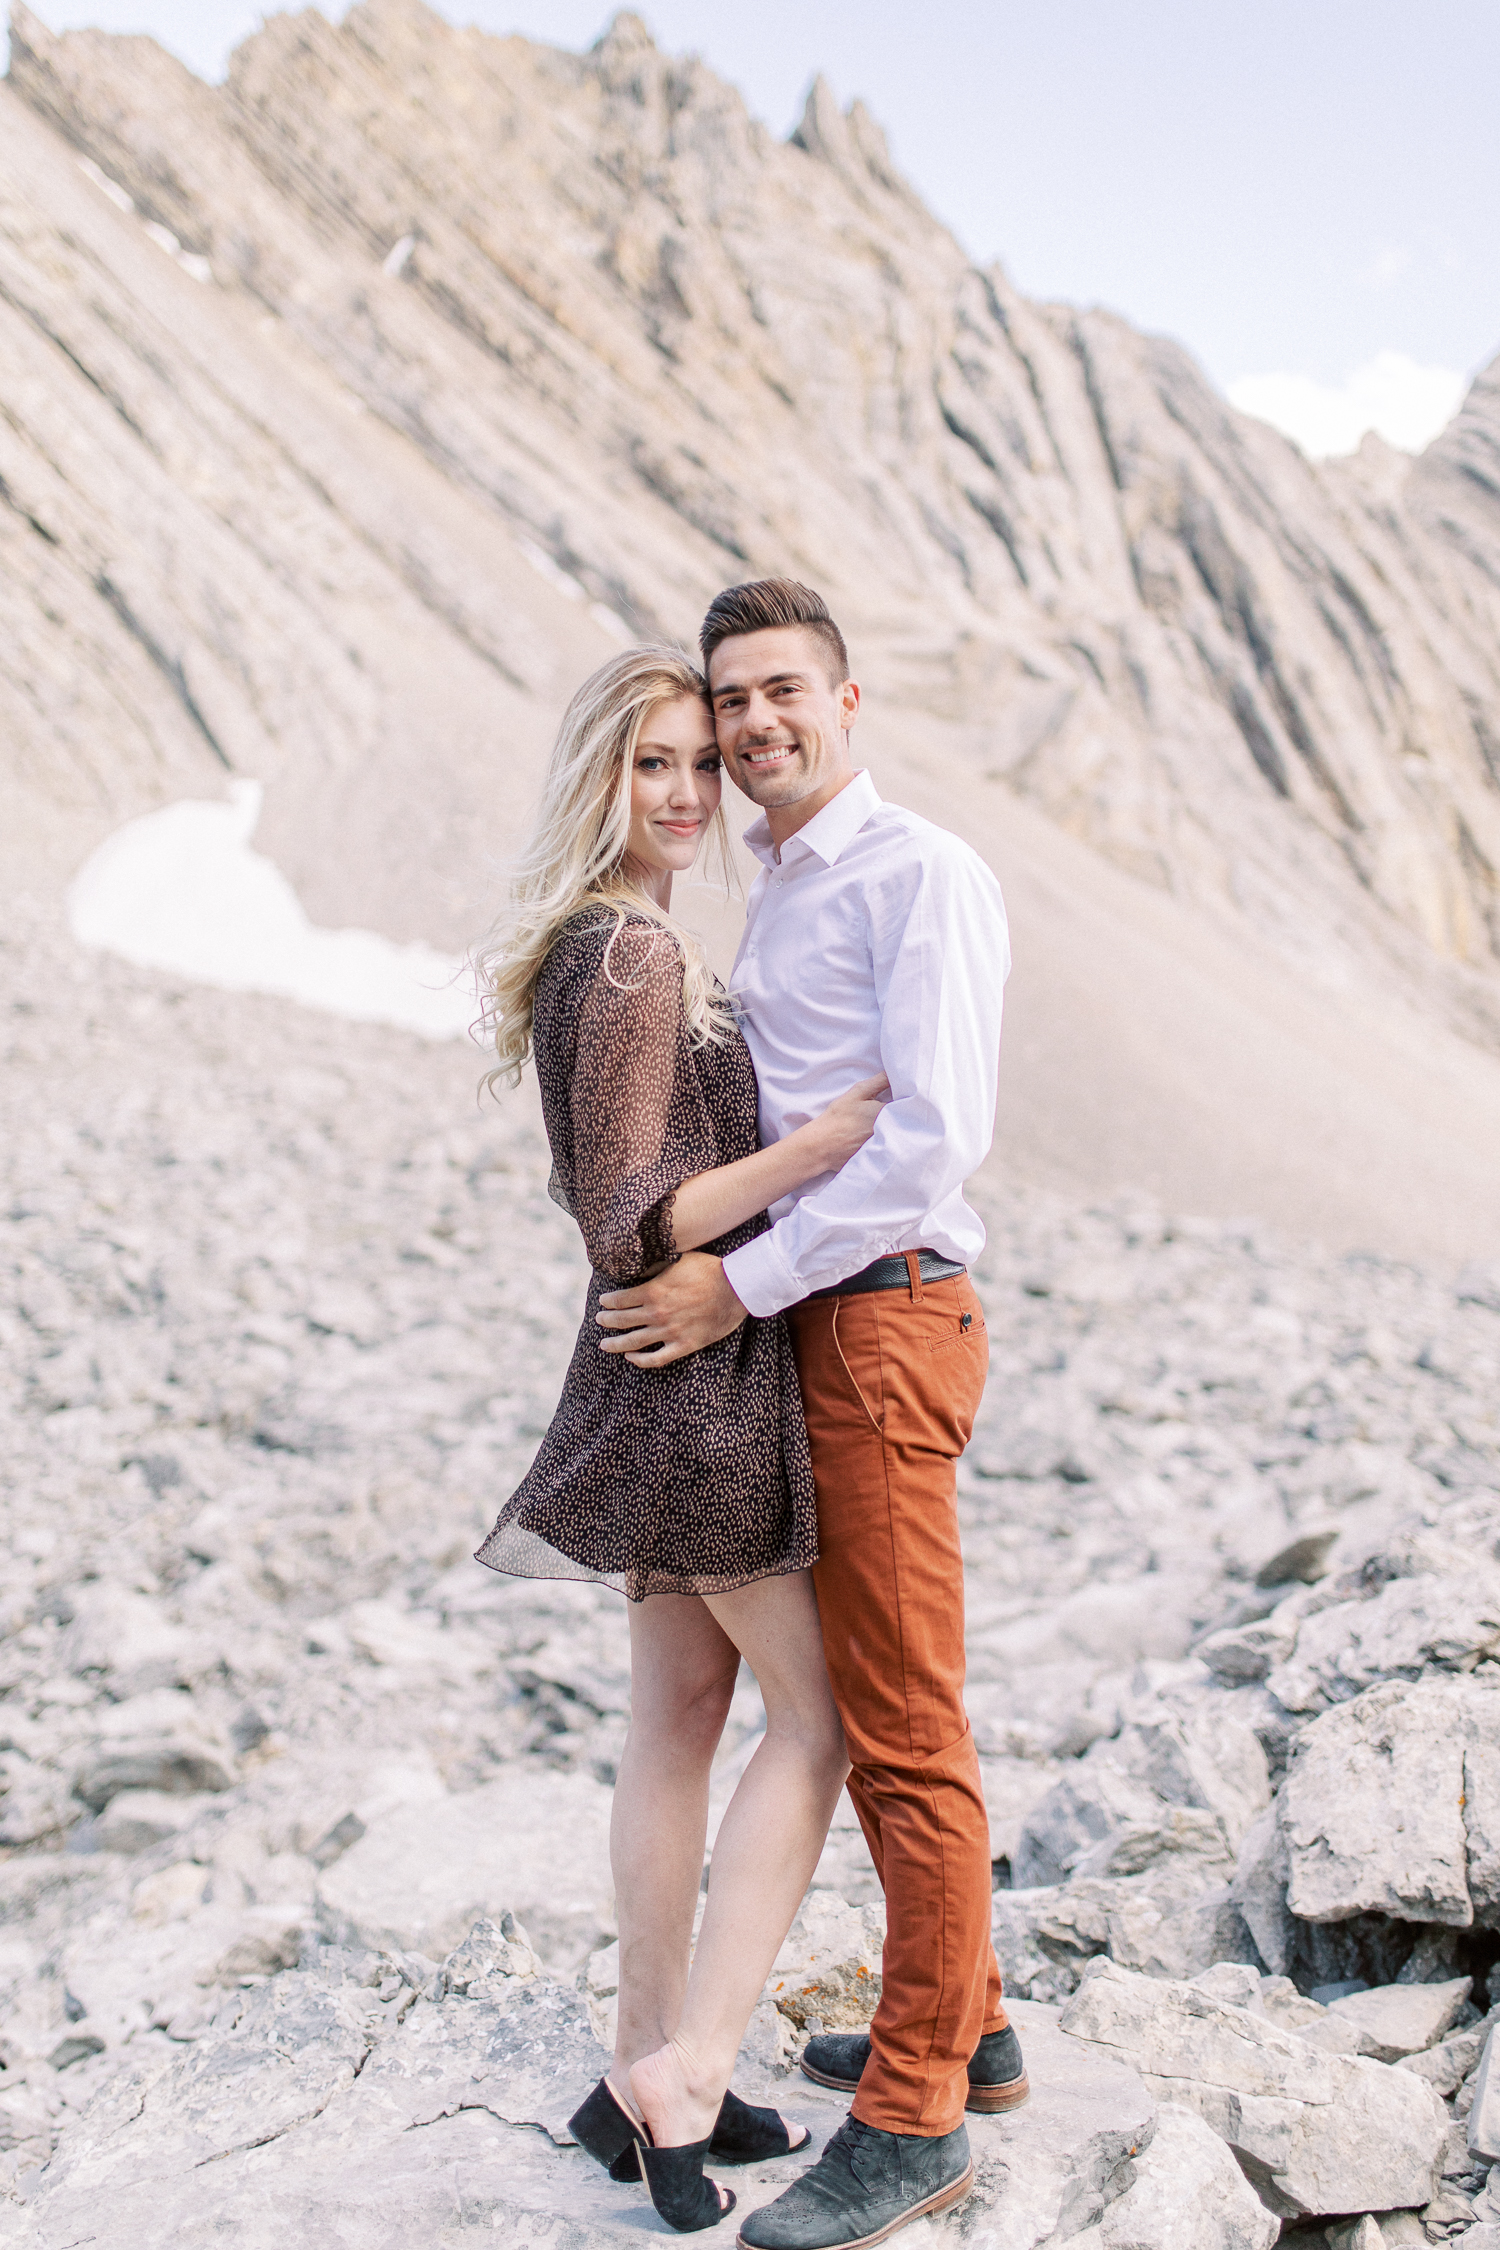 Banff national park summer engagement session